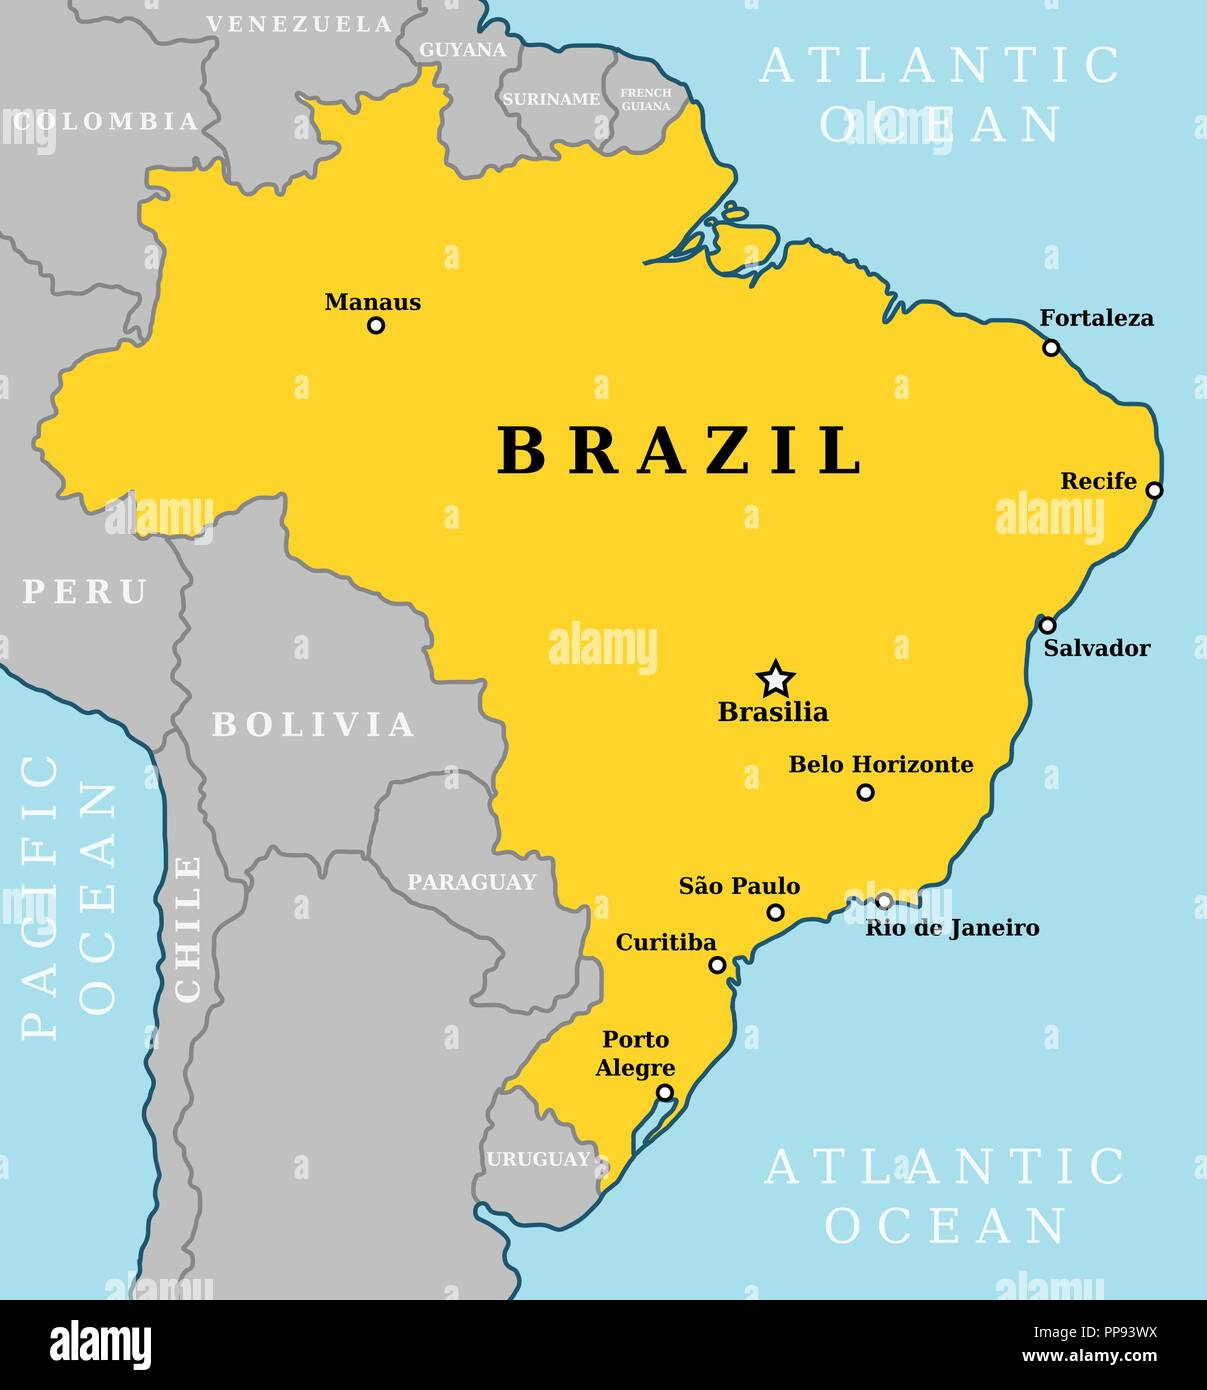 the map of brazil Map Of Brazil Country Outline With 10 Largest Cities Including the map of brazil